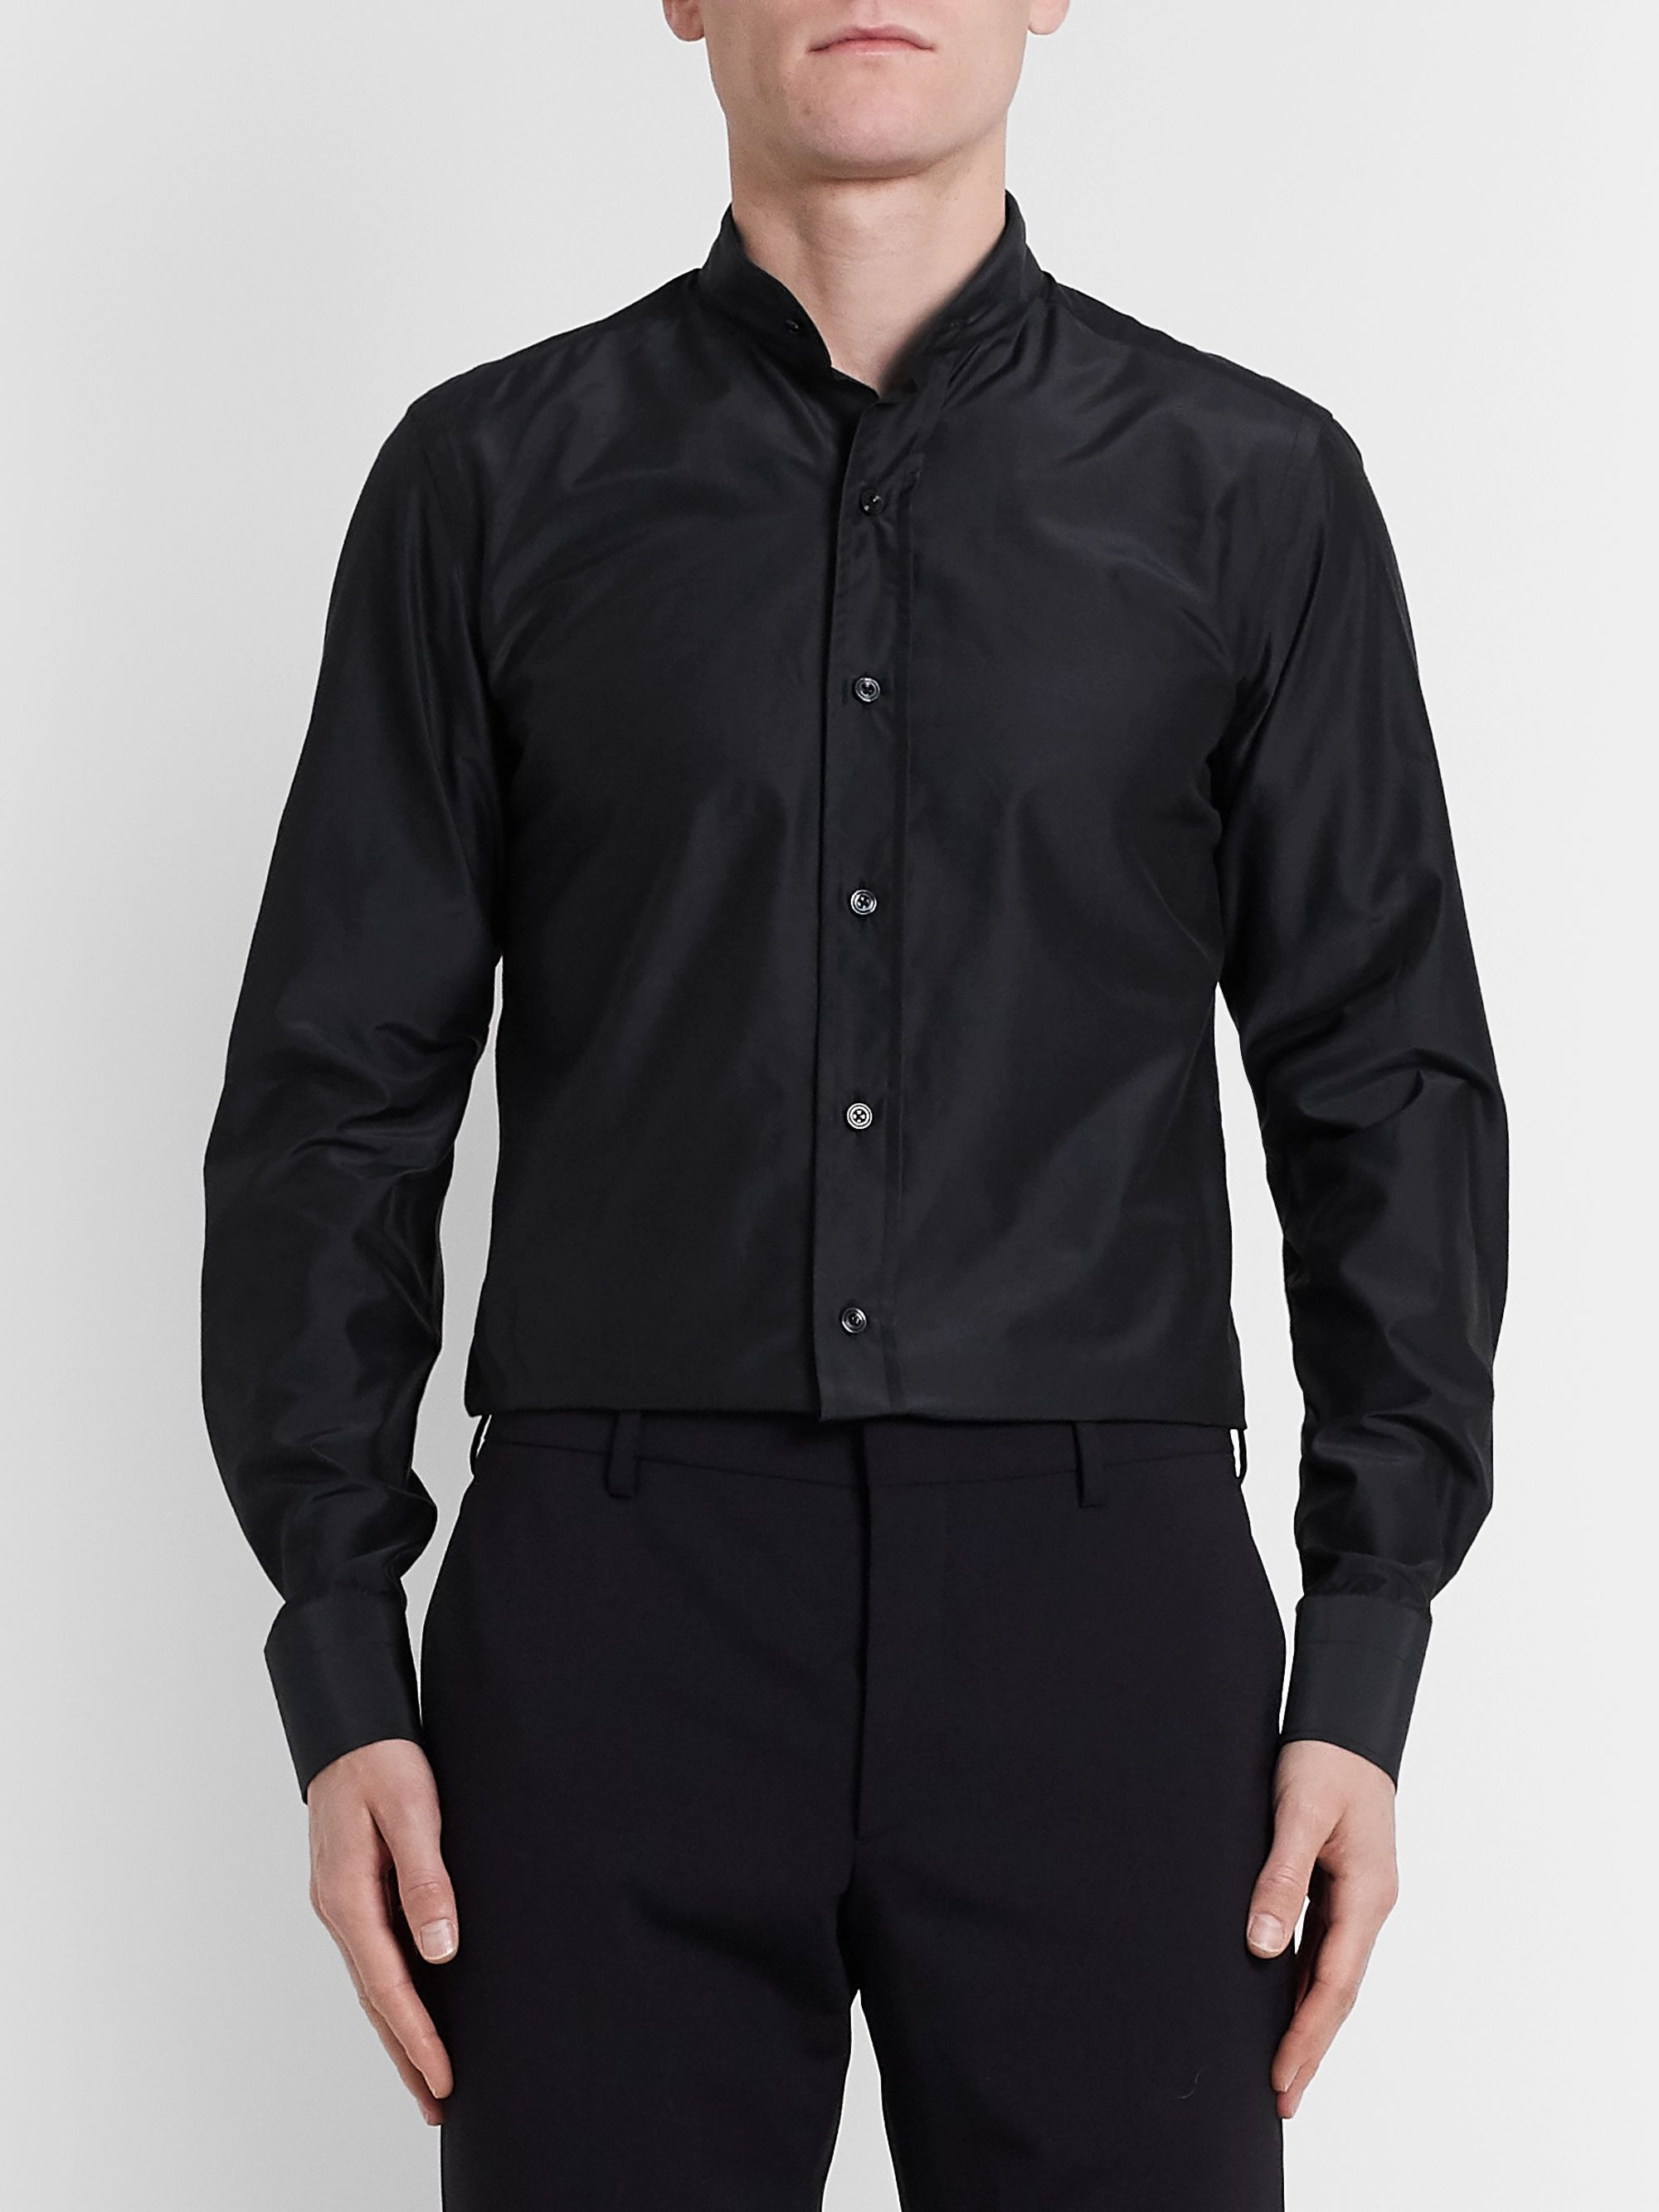 TOM FORD Midnight-Blue Grandad-Collar Cotton and Silk-Blend Shirt